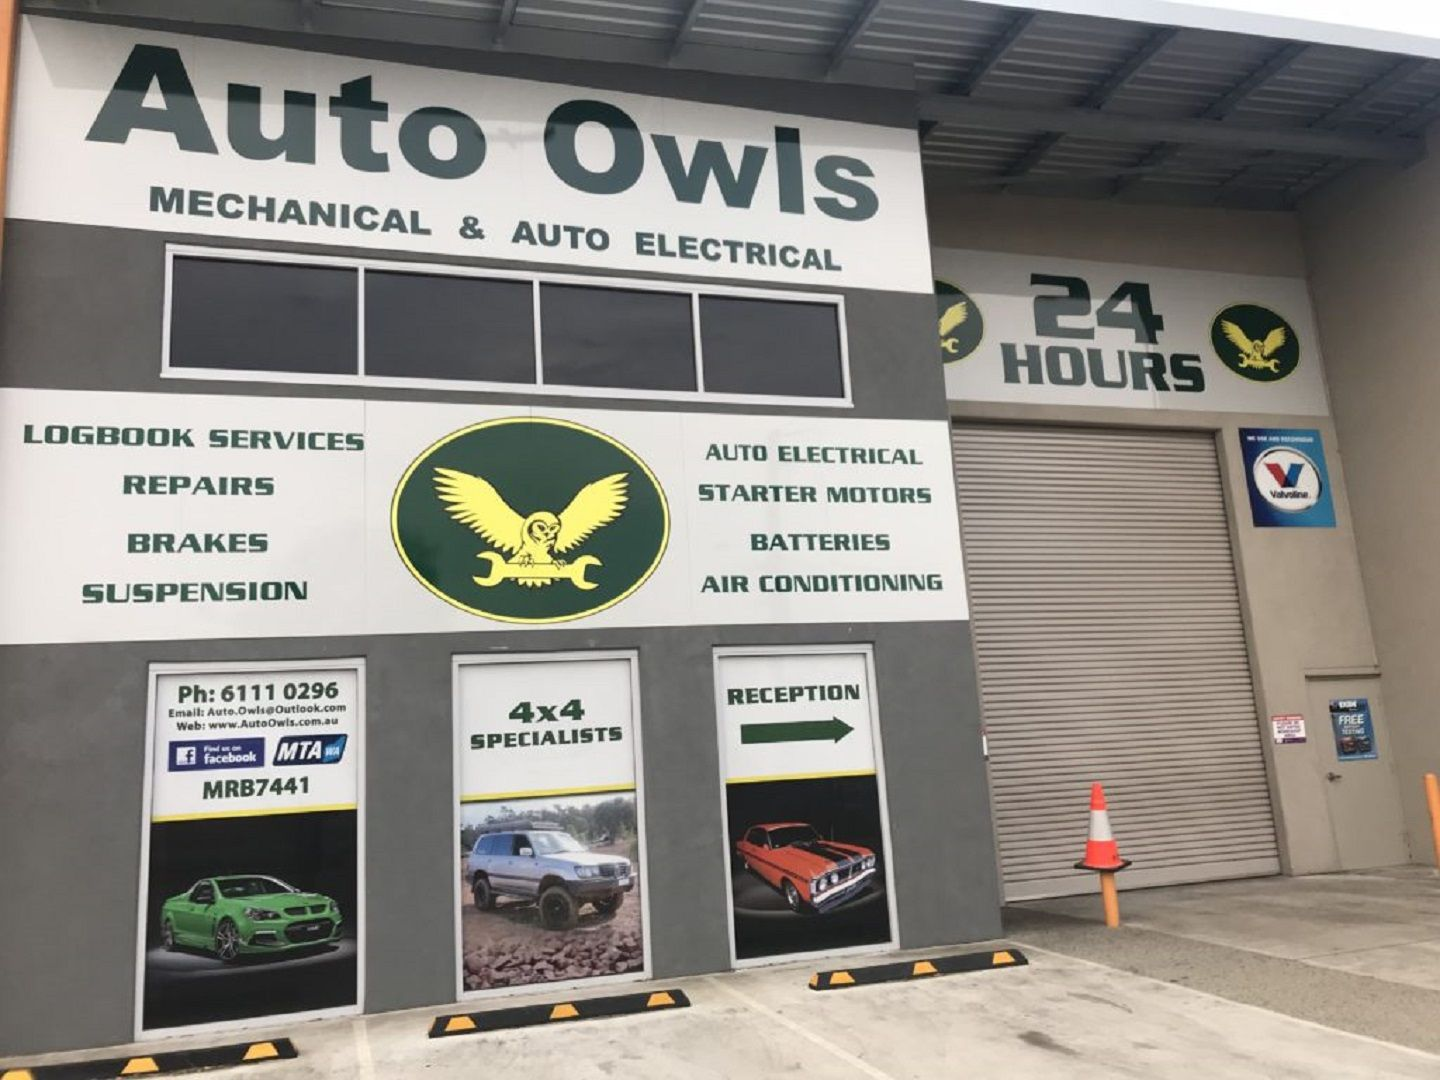 Auto Owls is a family owned and operated car servicing and